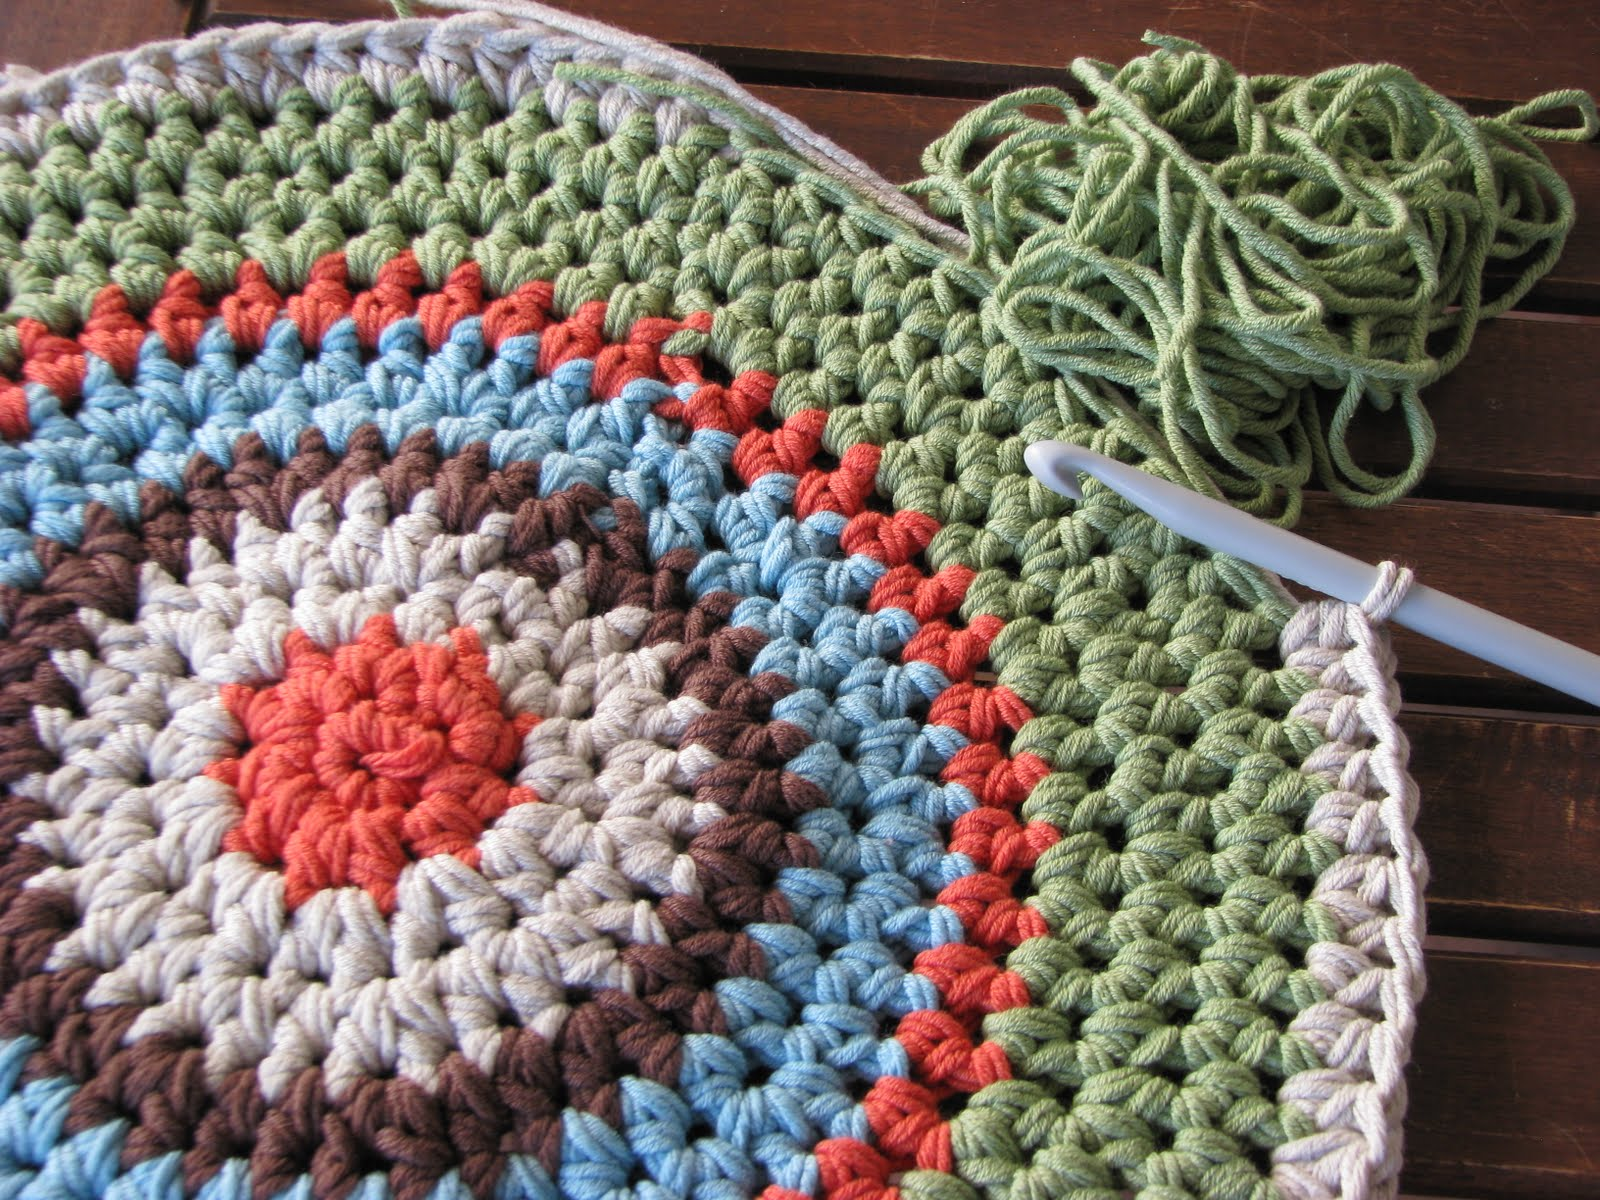 CROCHET YARN RUG PATTERN - Crochet Club